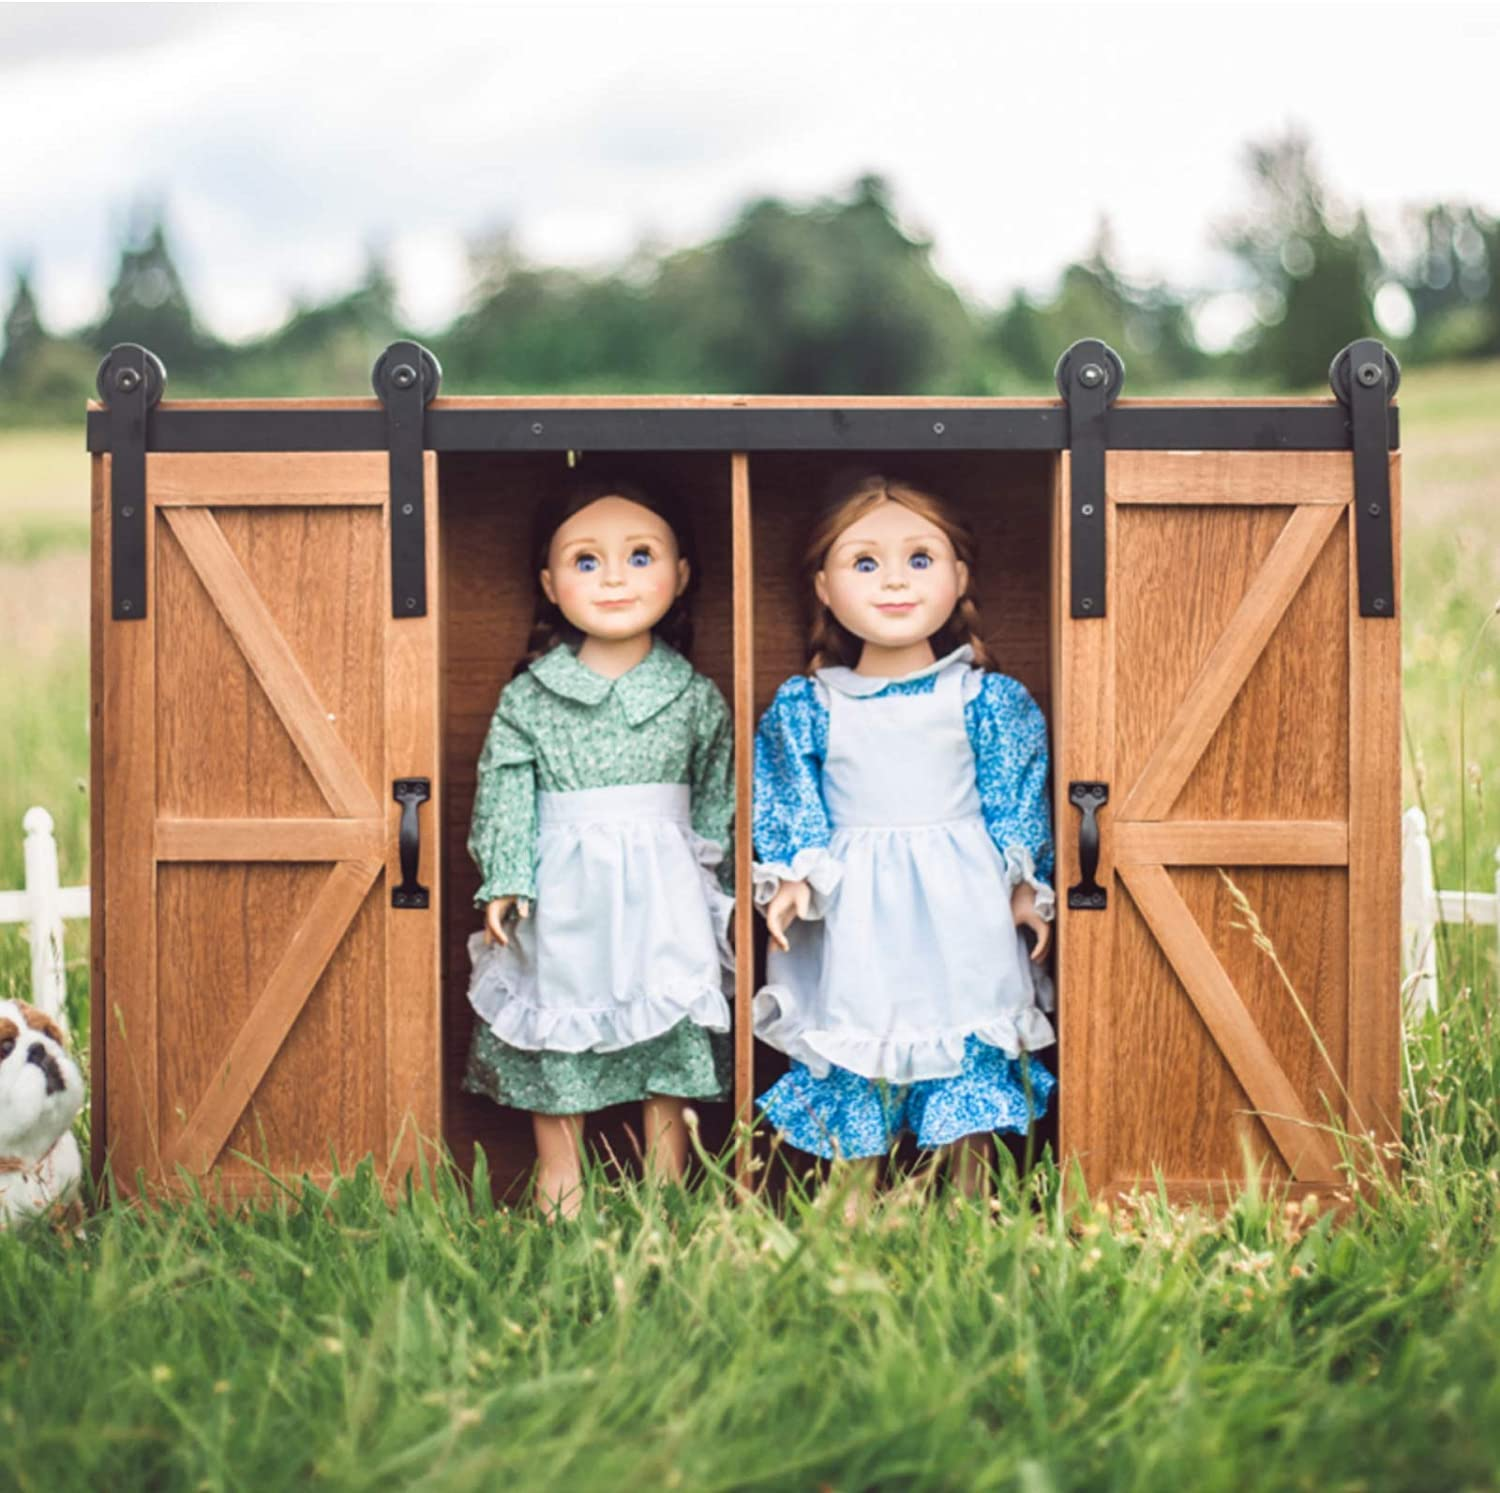 The Queen's Treasures 18 Inch Doll Furniture, Officially Licensed Little House On The Prairie Doll, Clothes and Accessory Storage Trunk, Compatible with American Girl Dolls